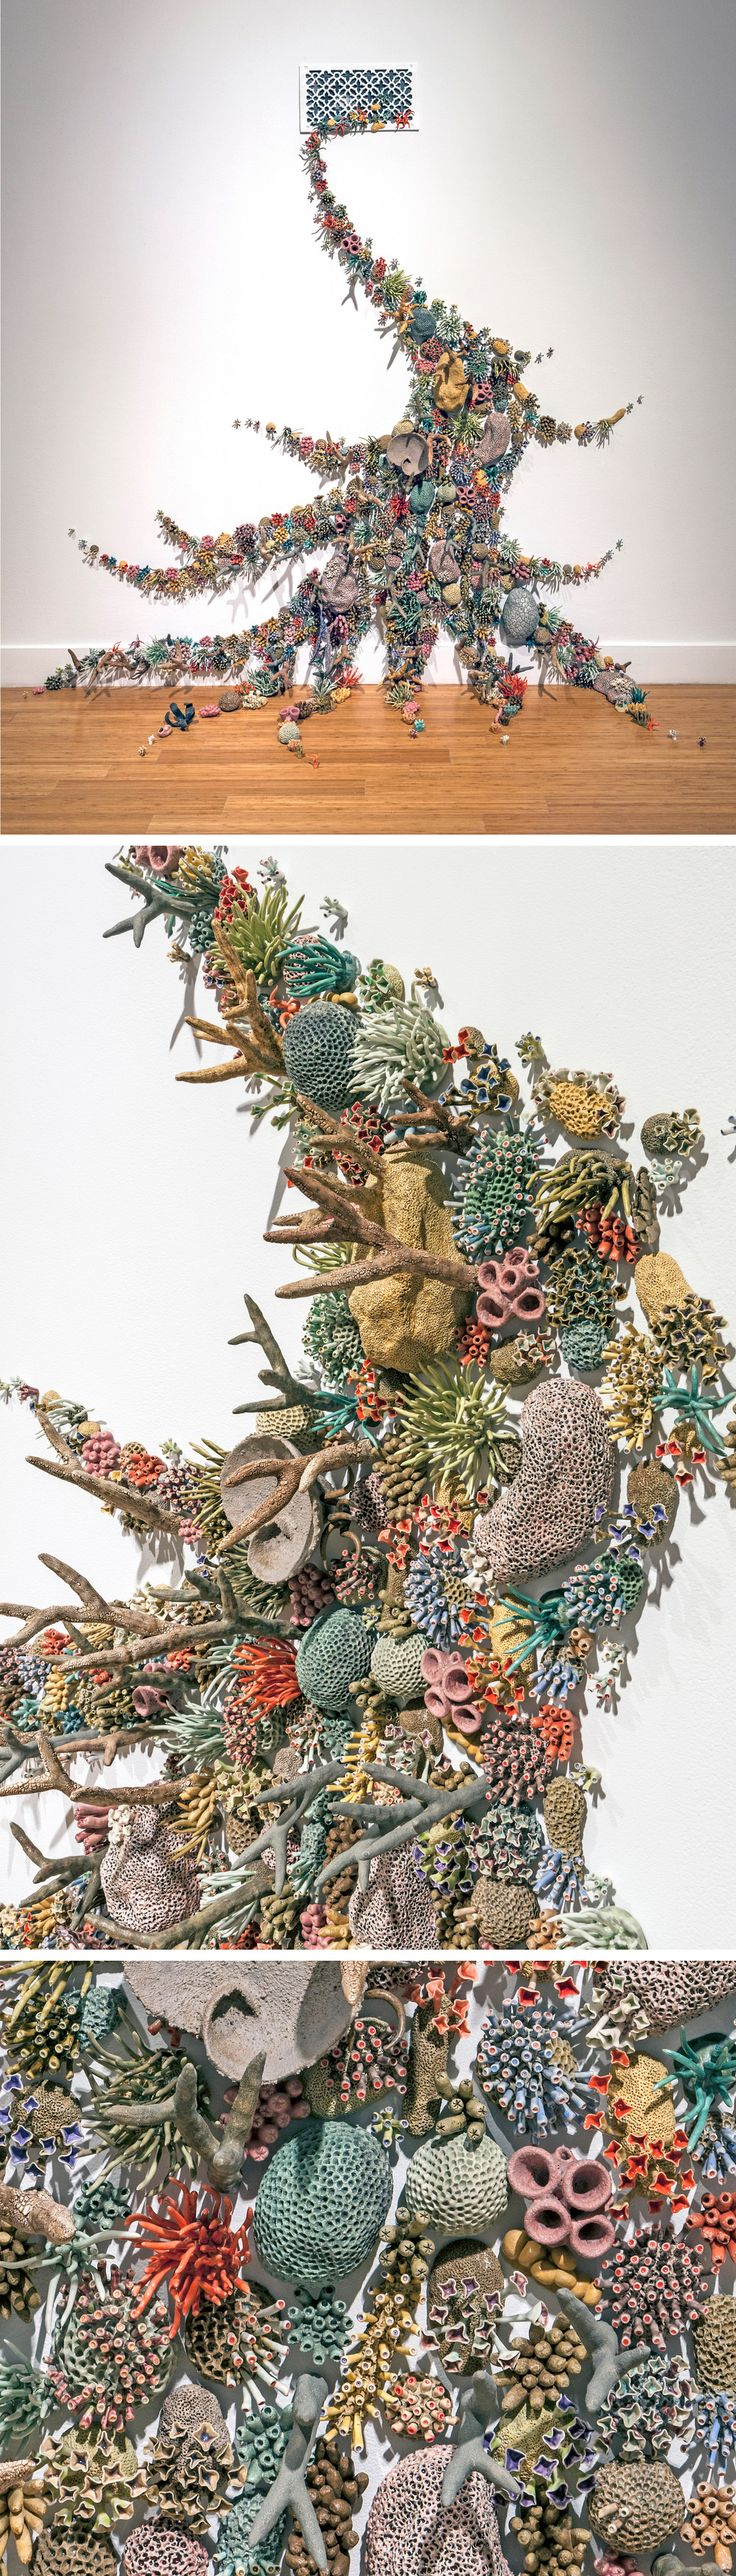 New Ceramic Coral Reefs by Courtney Mattison Draw Attention to Earth's Changing Oceans